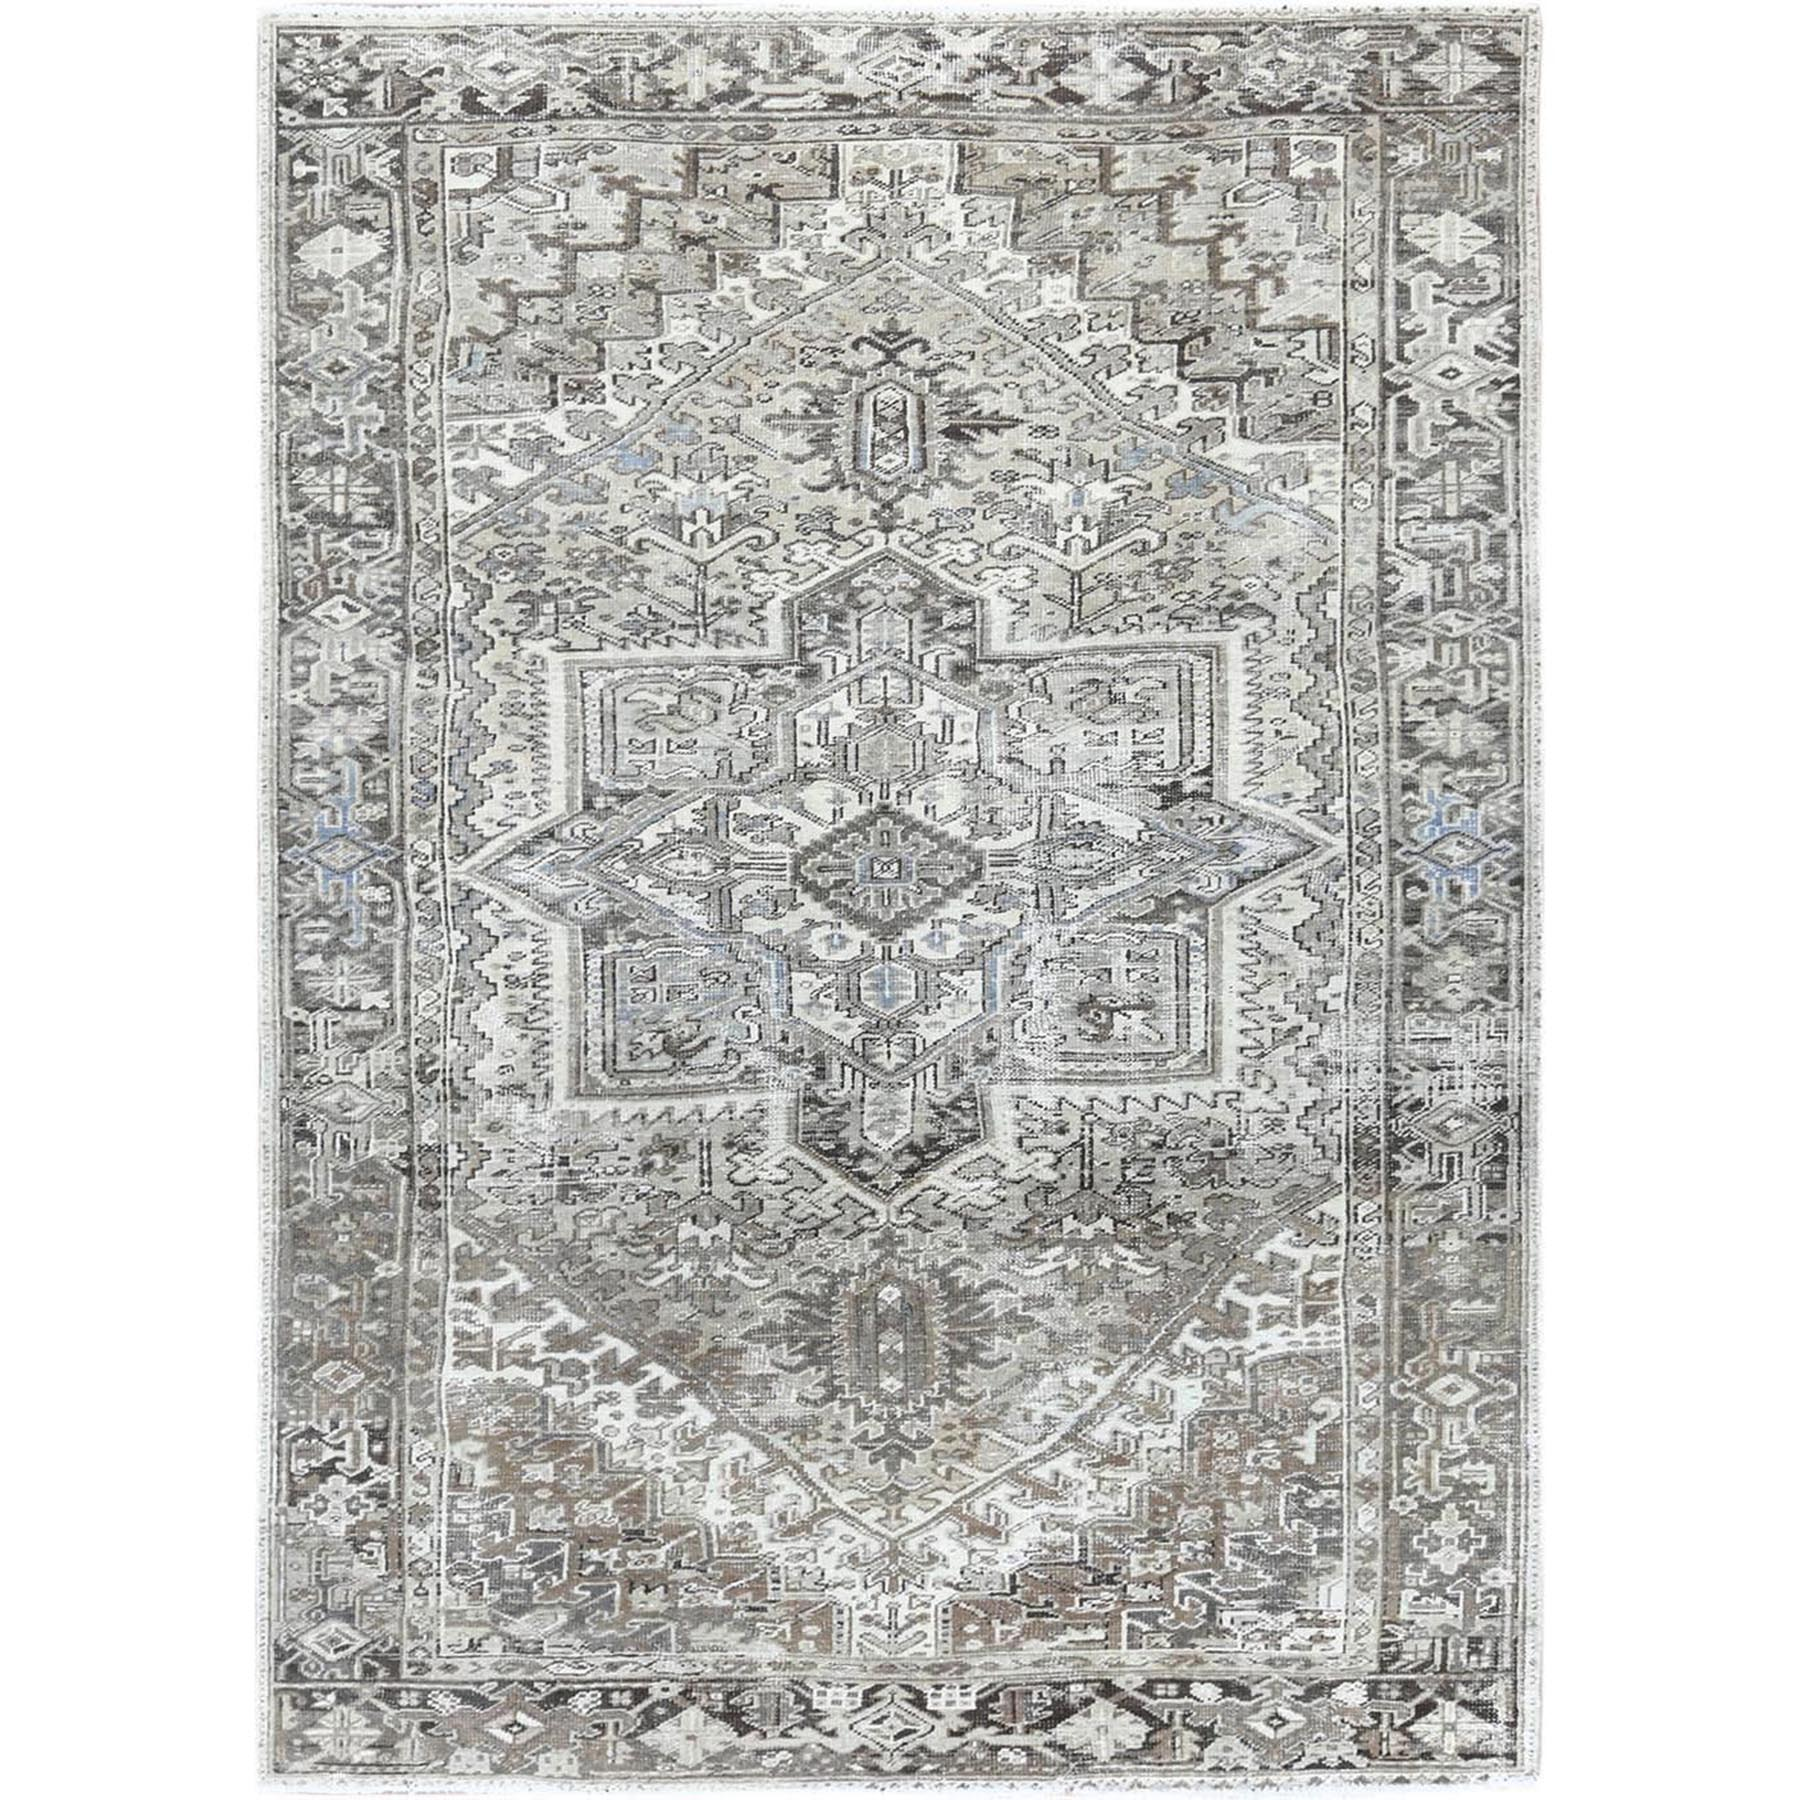 """7'3""""X10'5"""" Gray Vintage And Worn Persian Heriz Clean Natural Wool Hand Knotted Oriental Rug moa60a6e"""